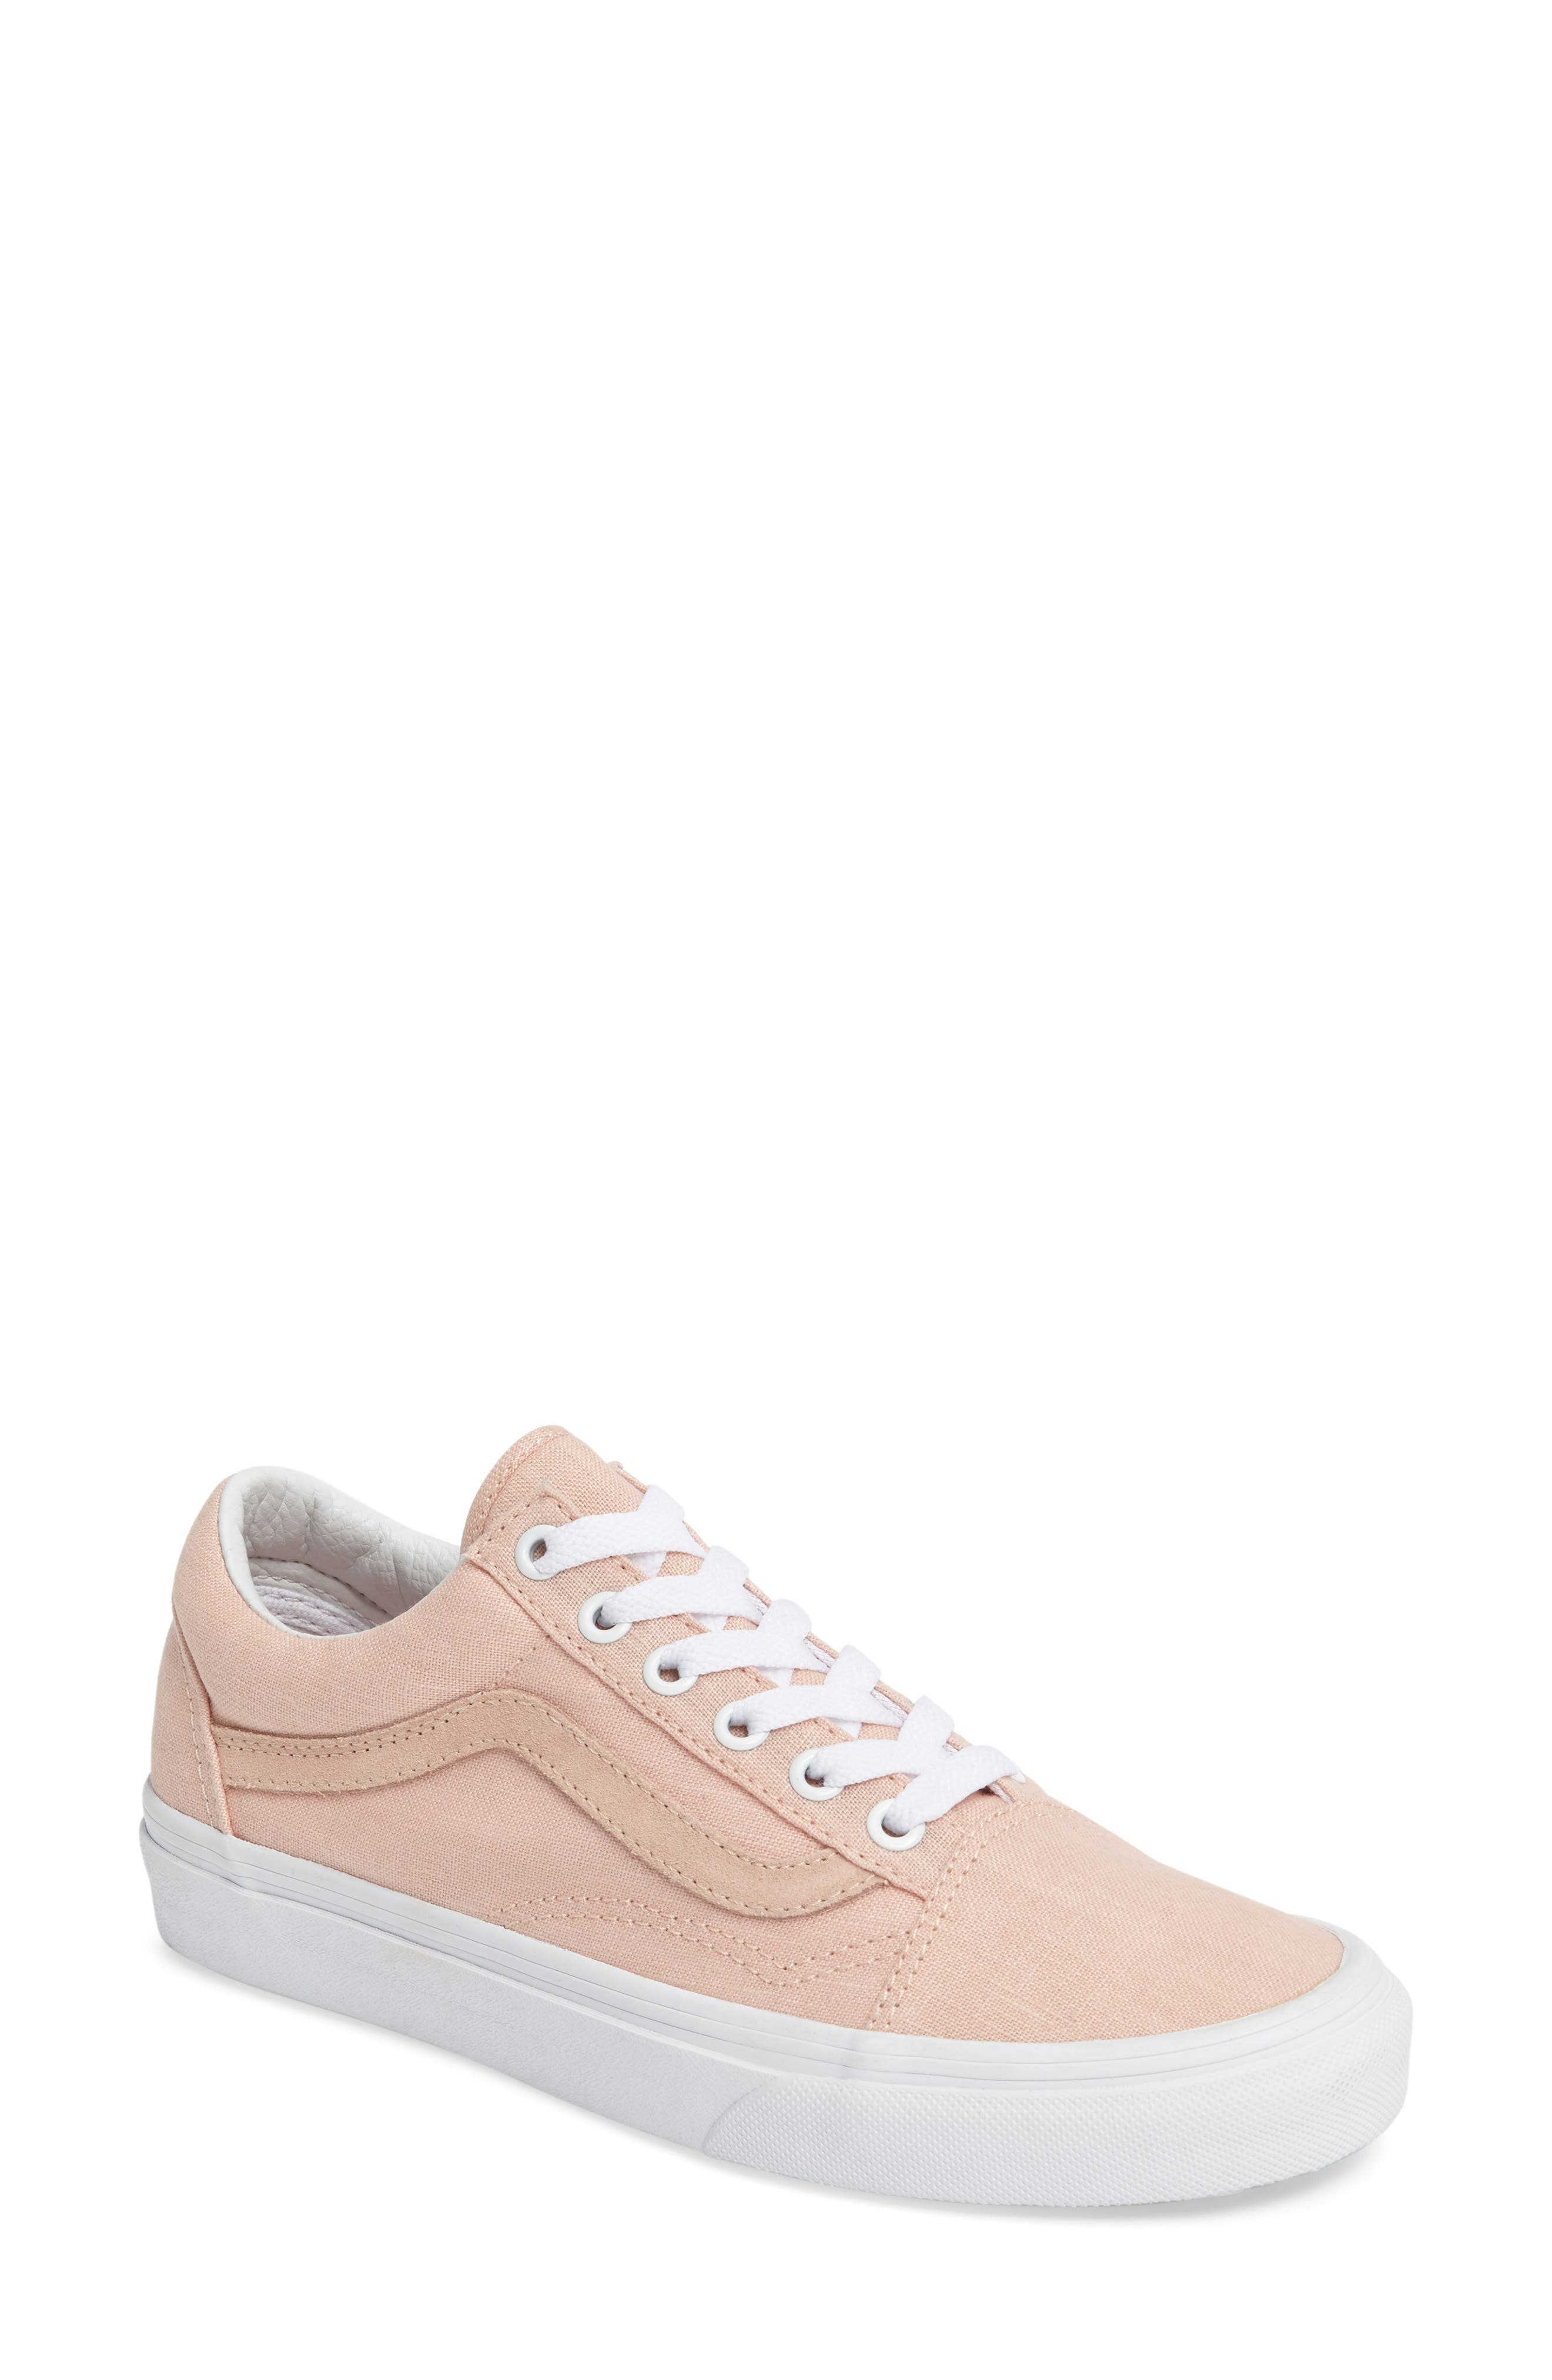 Main Image - Vans Old Skool Sneaker (Women)